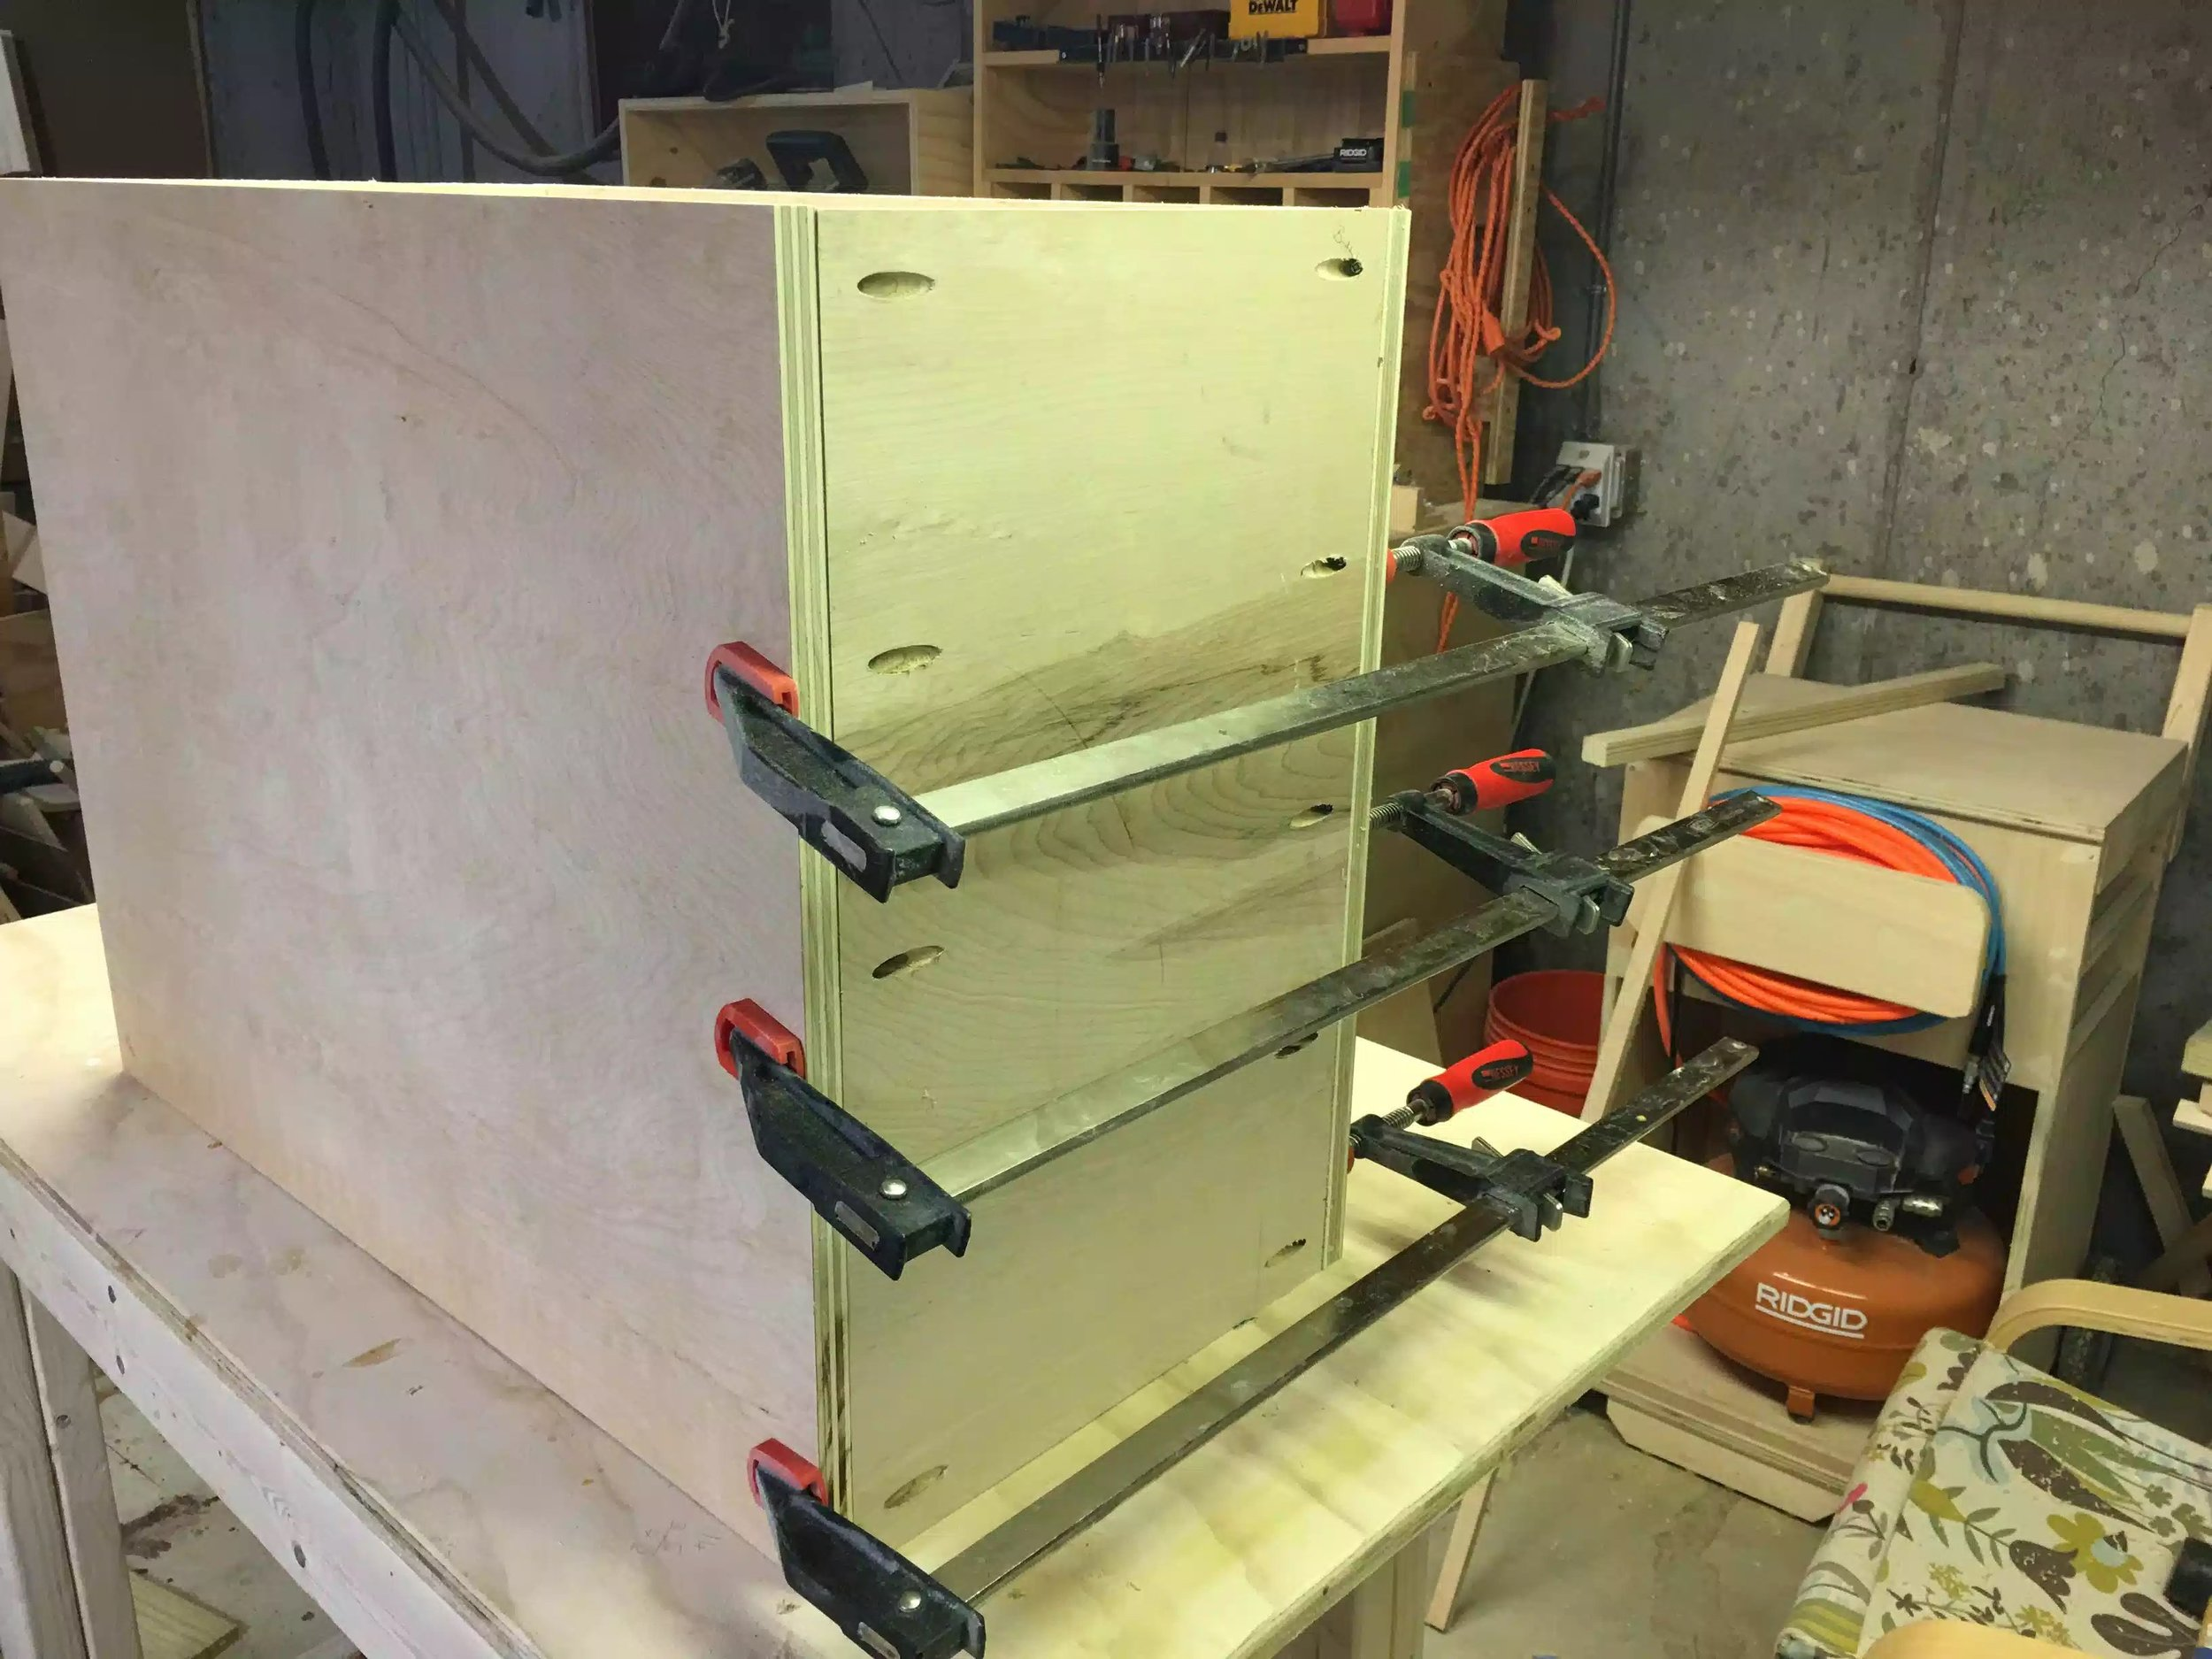 Here you can see the actual base of the cabinet being clamped together getting ready for the pocket hole screws to be inserted.